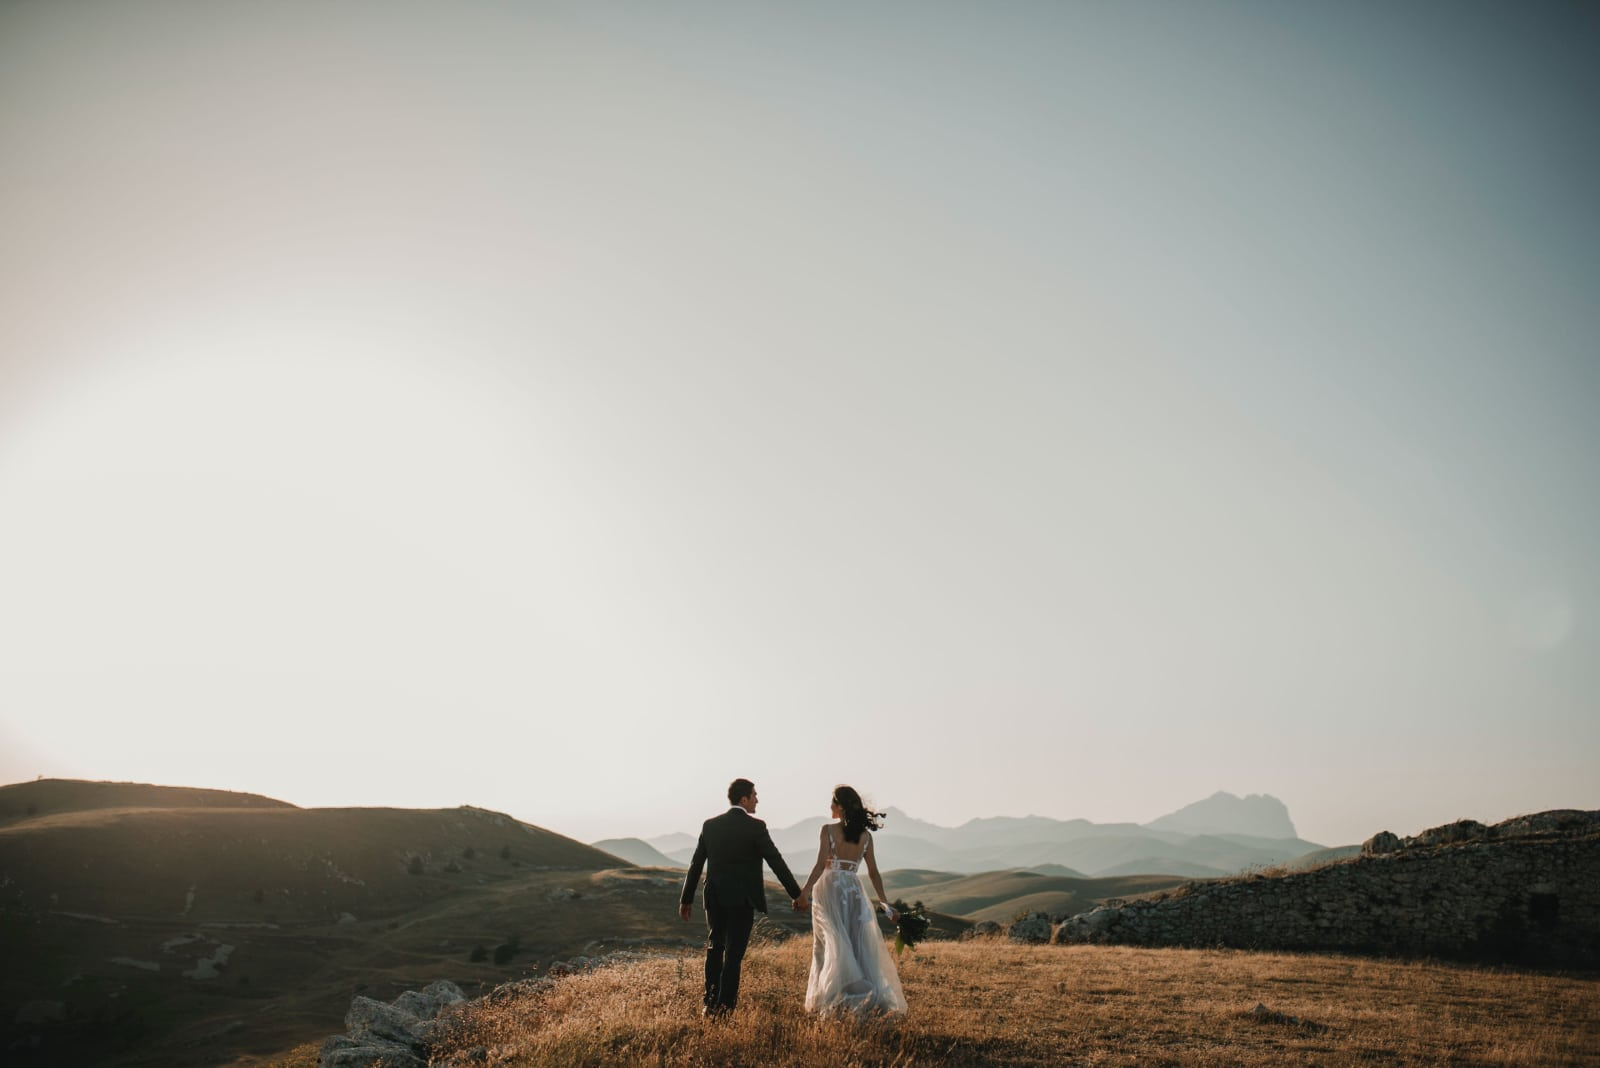 groom and bride holding hands while standing in the field